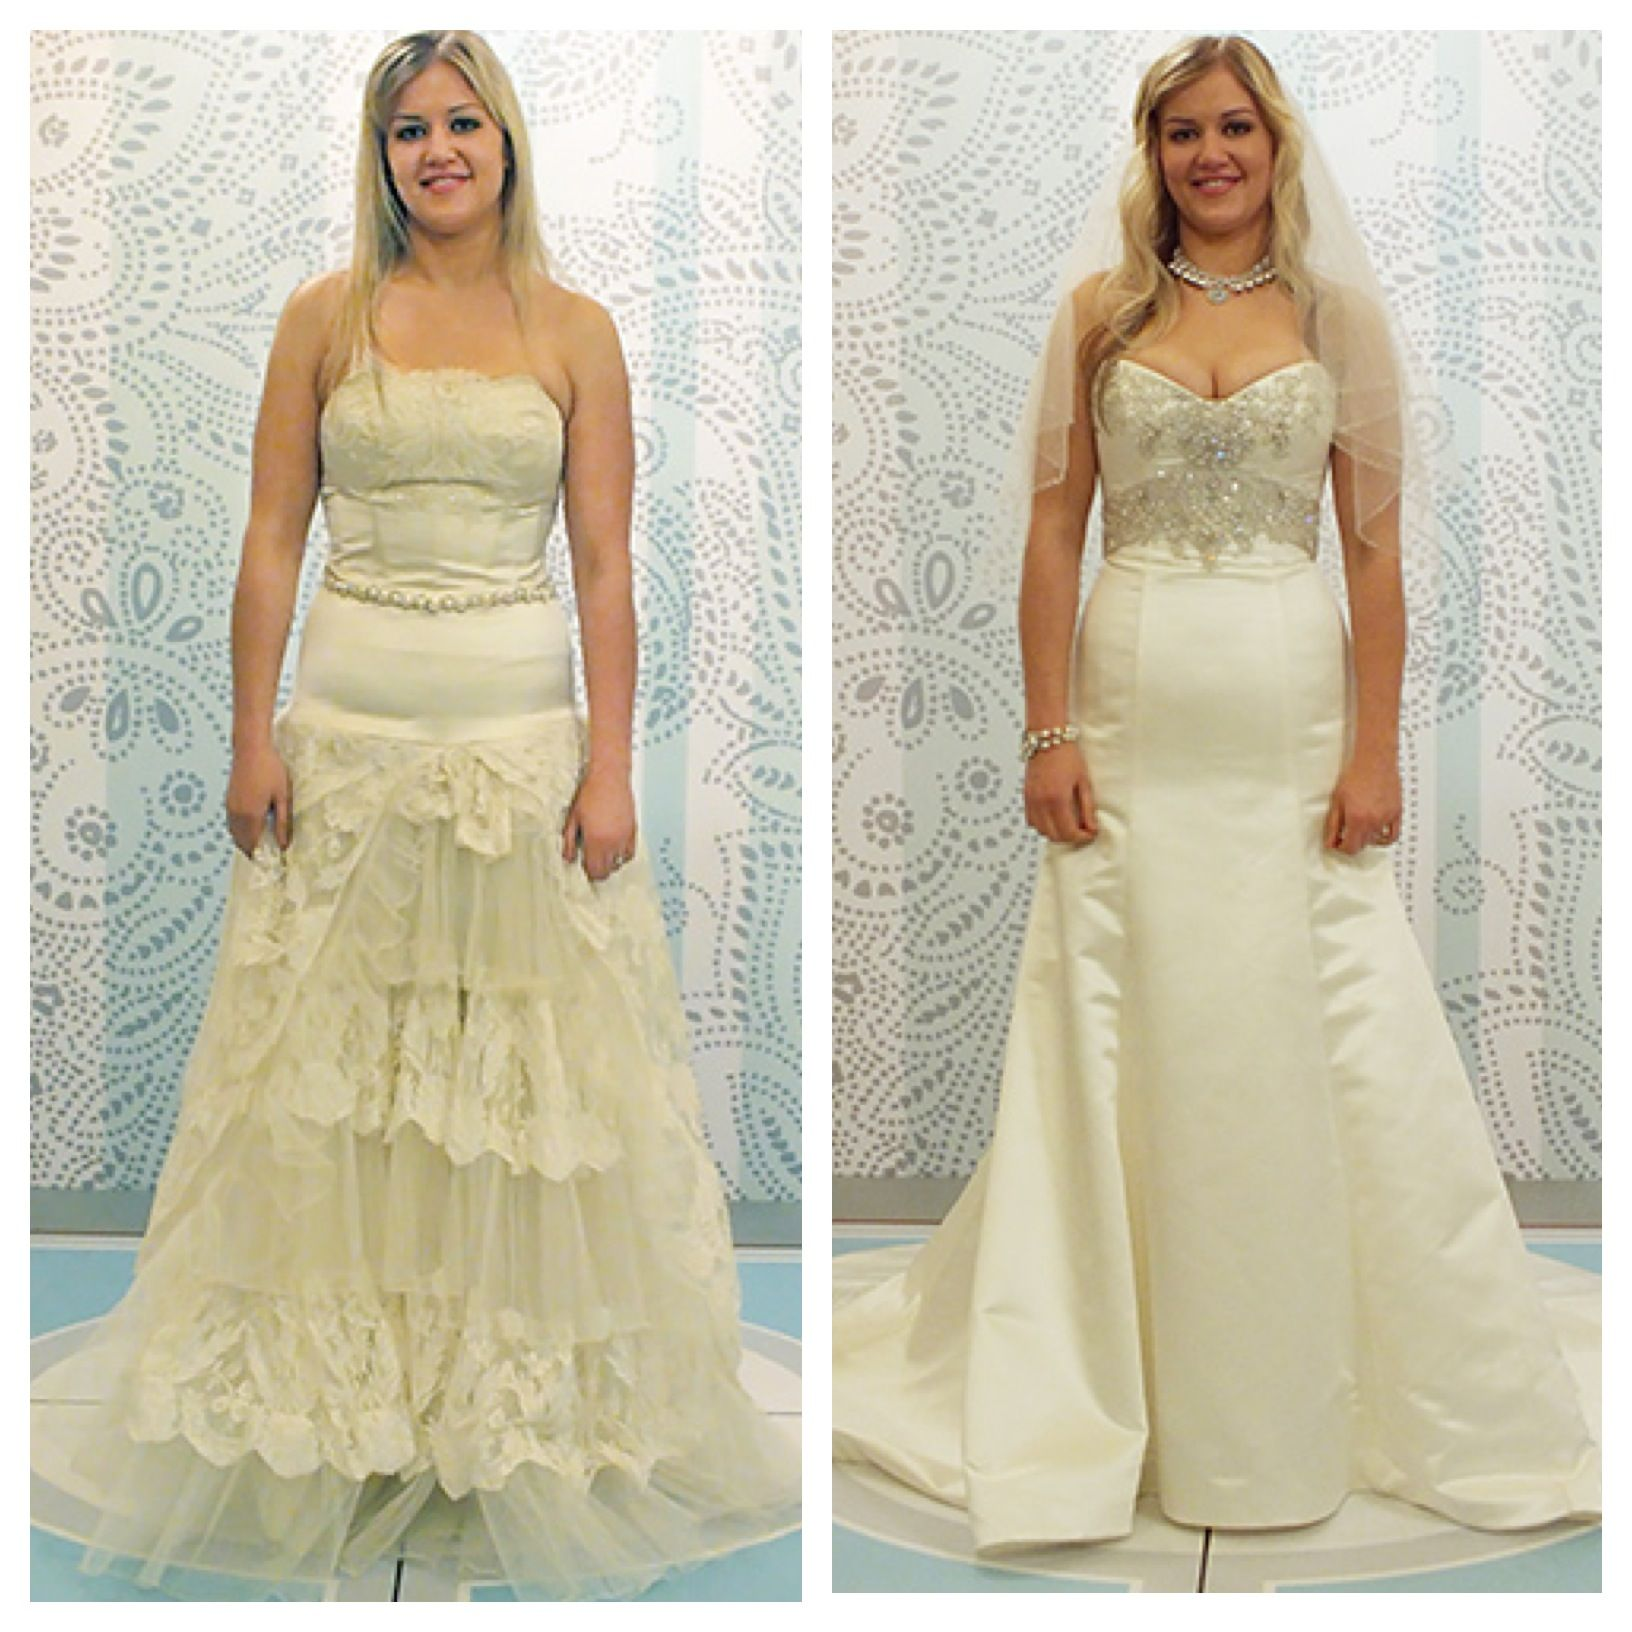 borrow wedding dress Left something borrowed Right something new Click to see which dress she